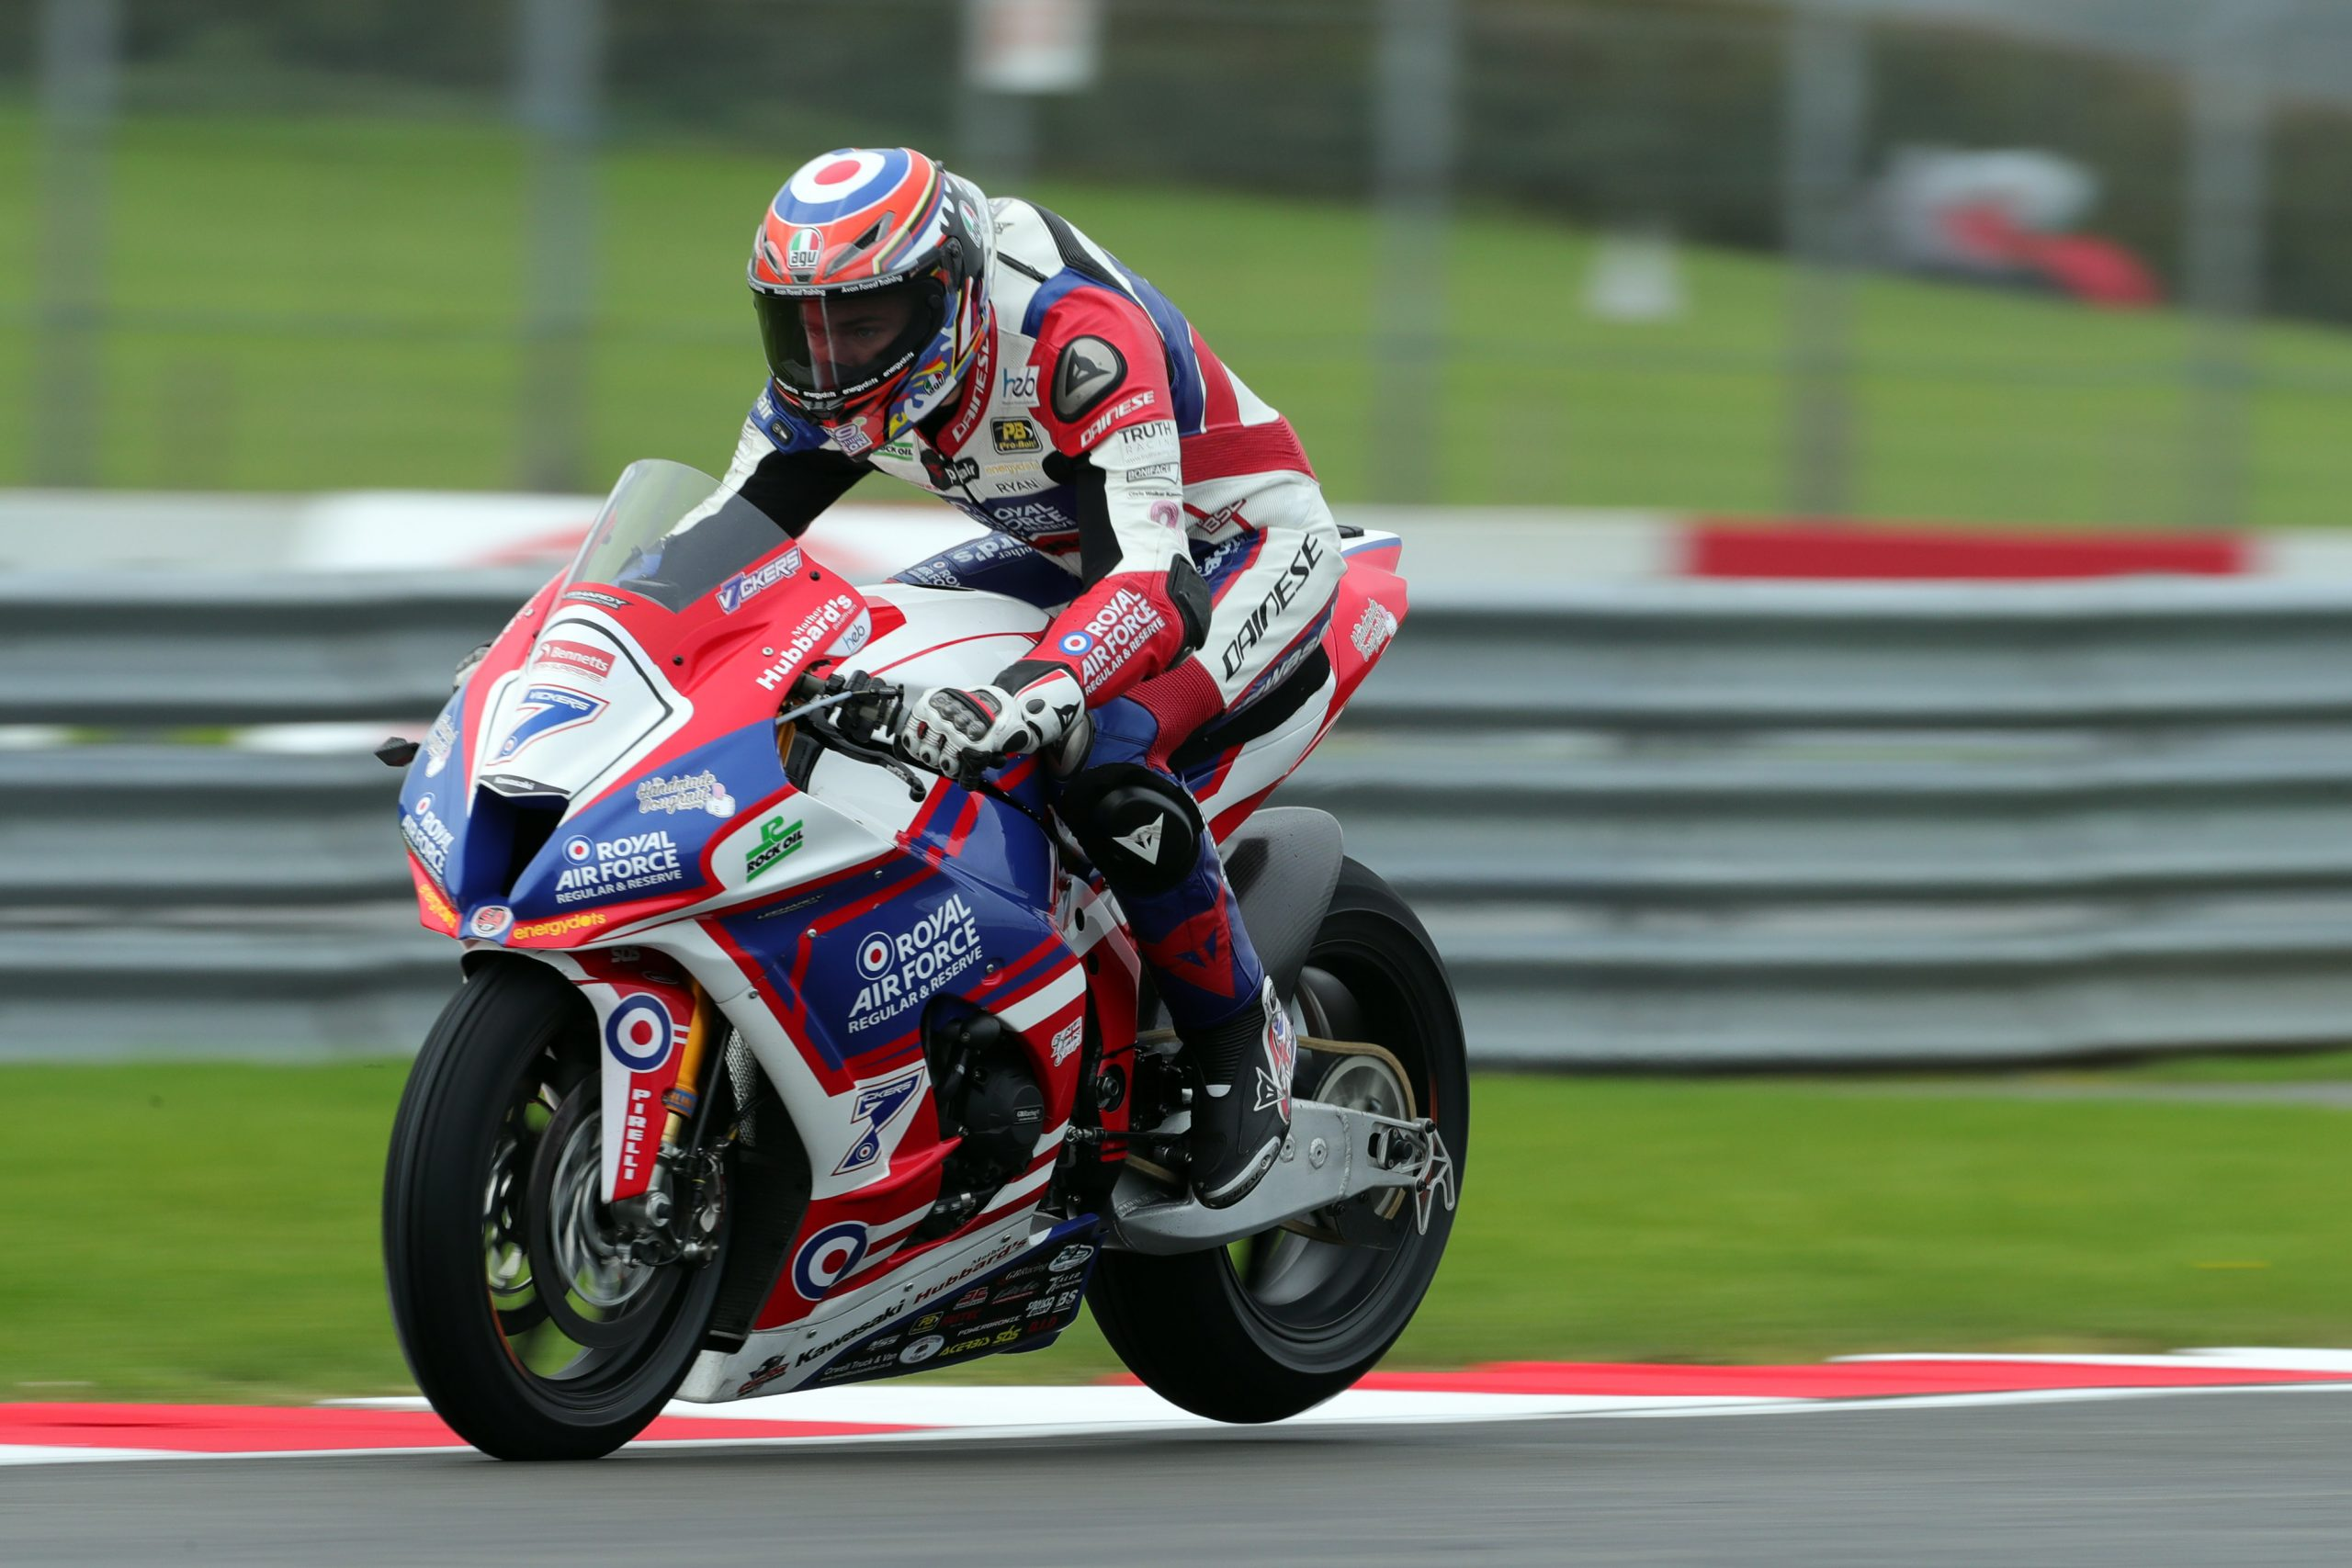 Vickers racing at BSB